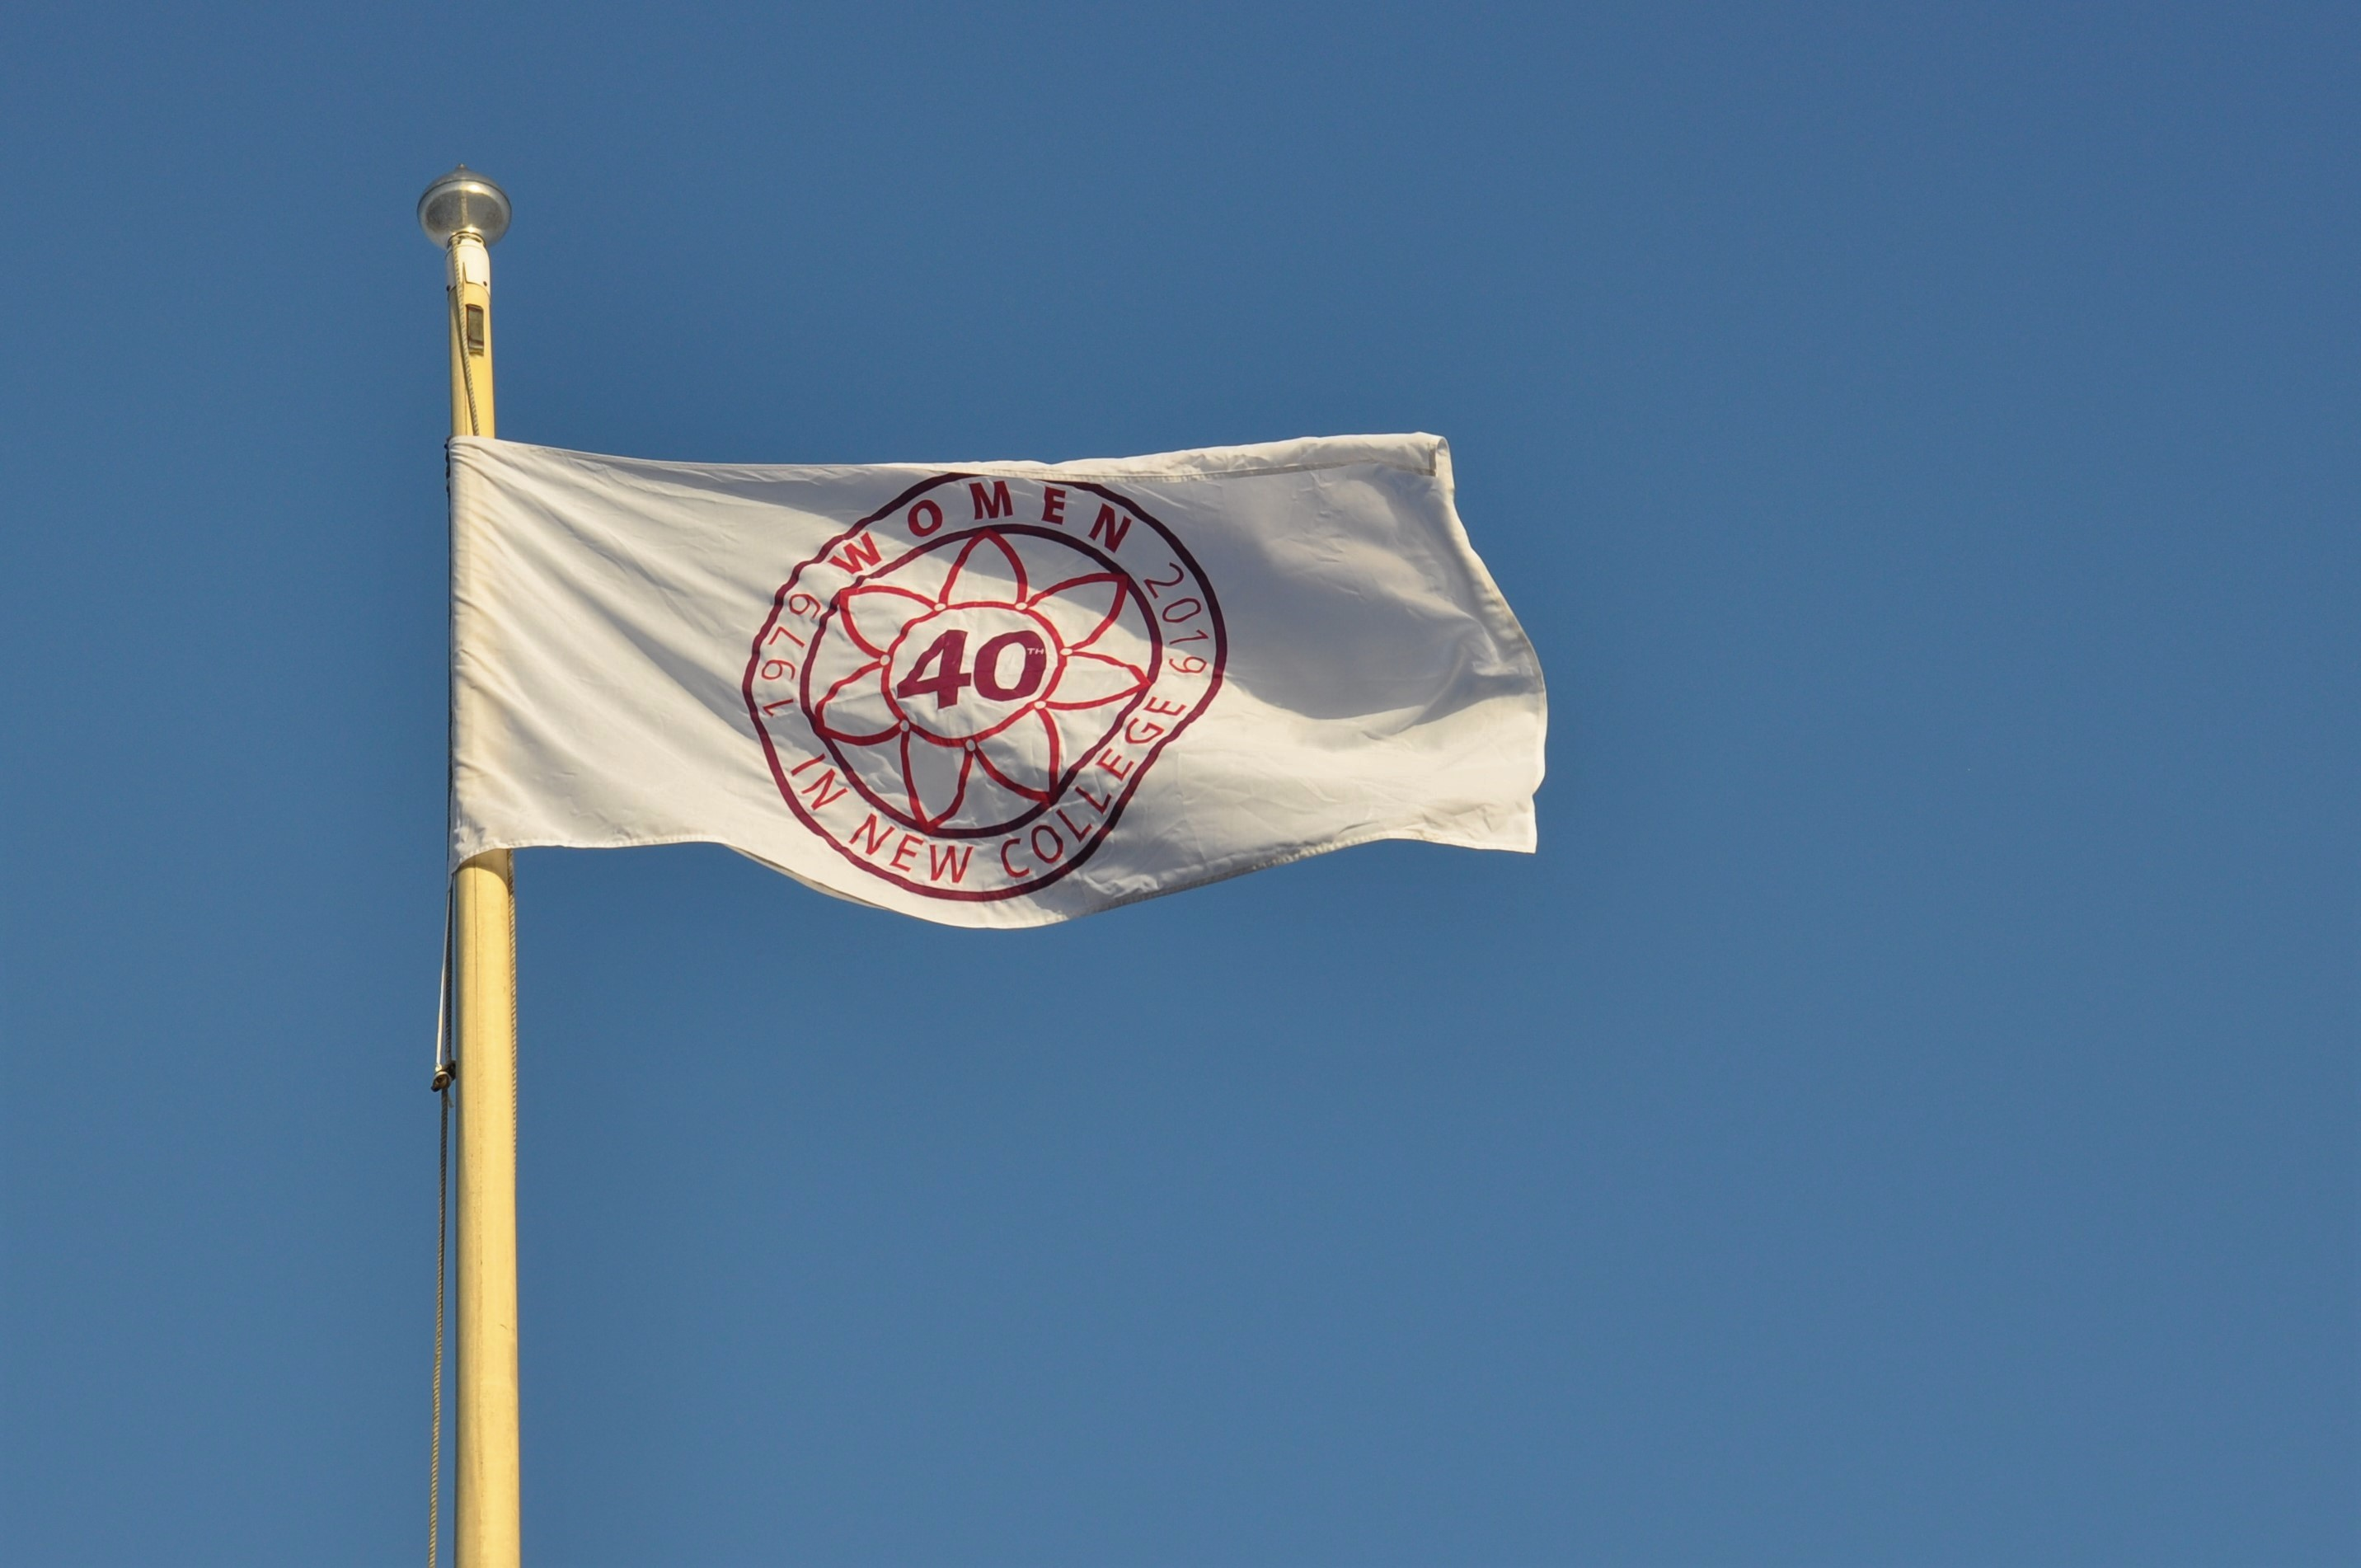 40th Anniversary of Women Flag